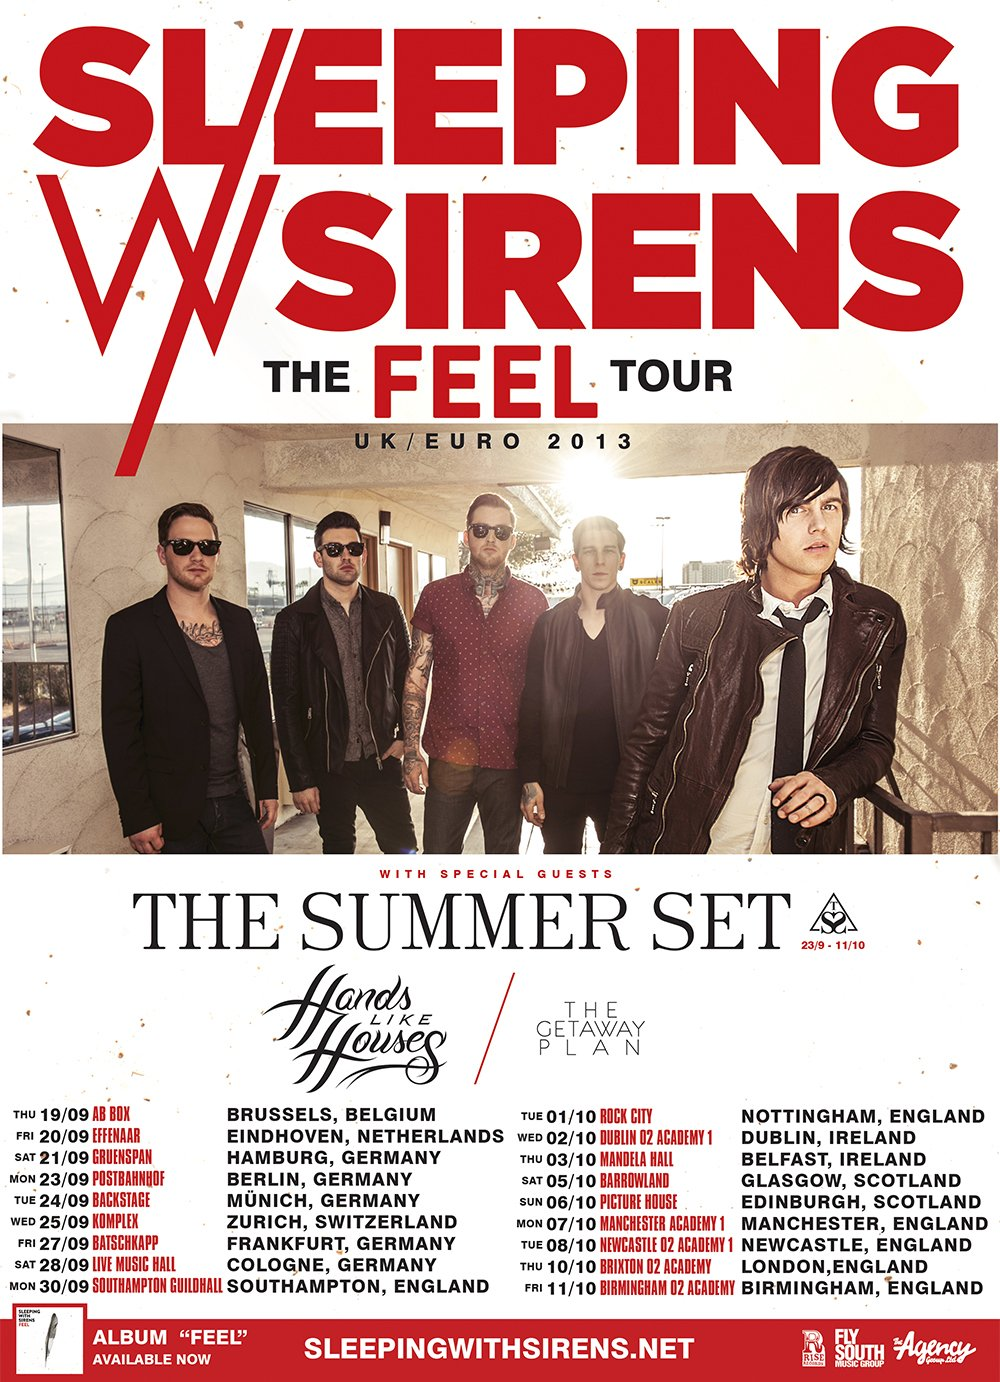 Support Acts Announced For Sleeping With Sirens Tour